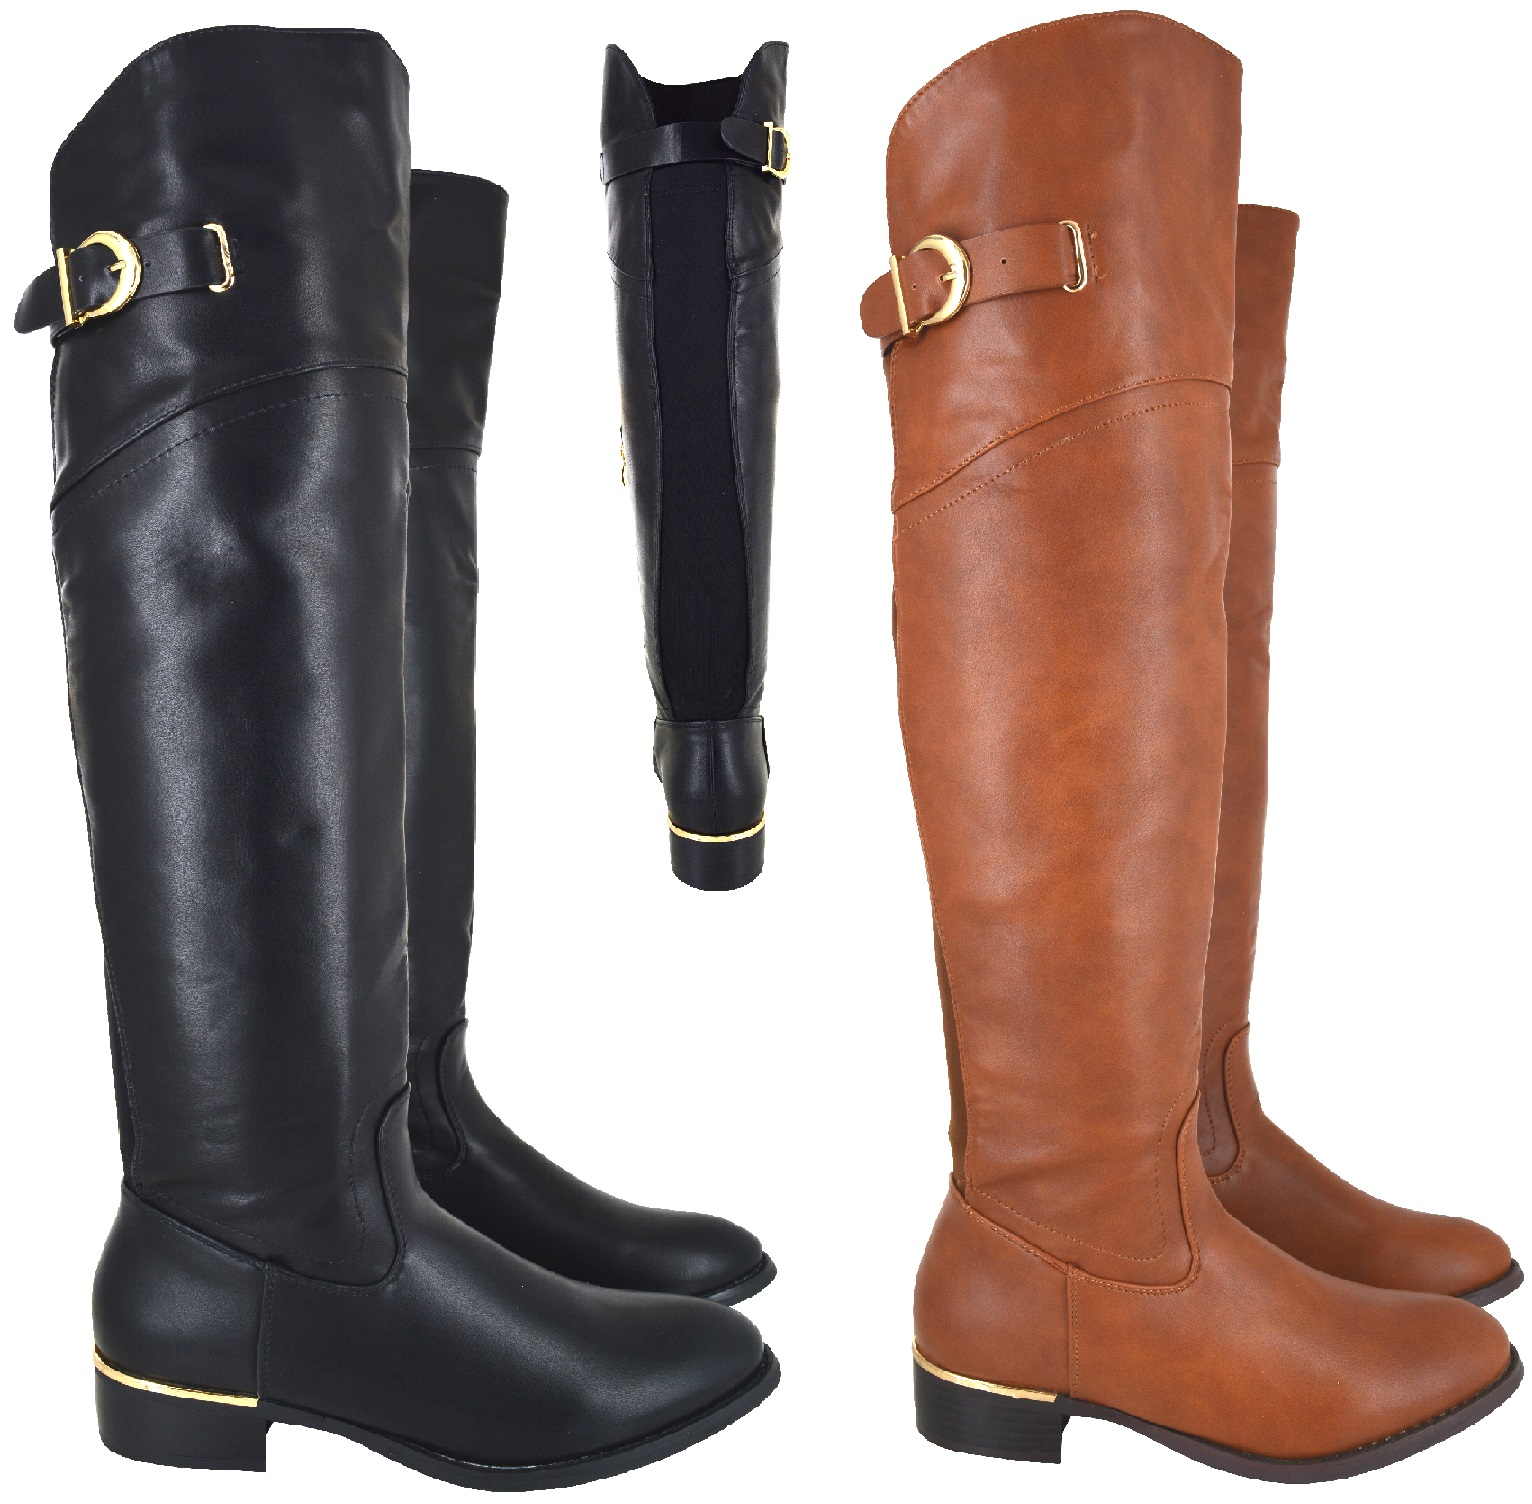 08e811e1744 Sentinel LADIES WOMENS OVER THE KNEE BOOT WIDE CALF FIT ELASTICATED FLAT HIGH  BOOTS SIZE